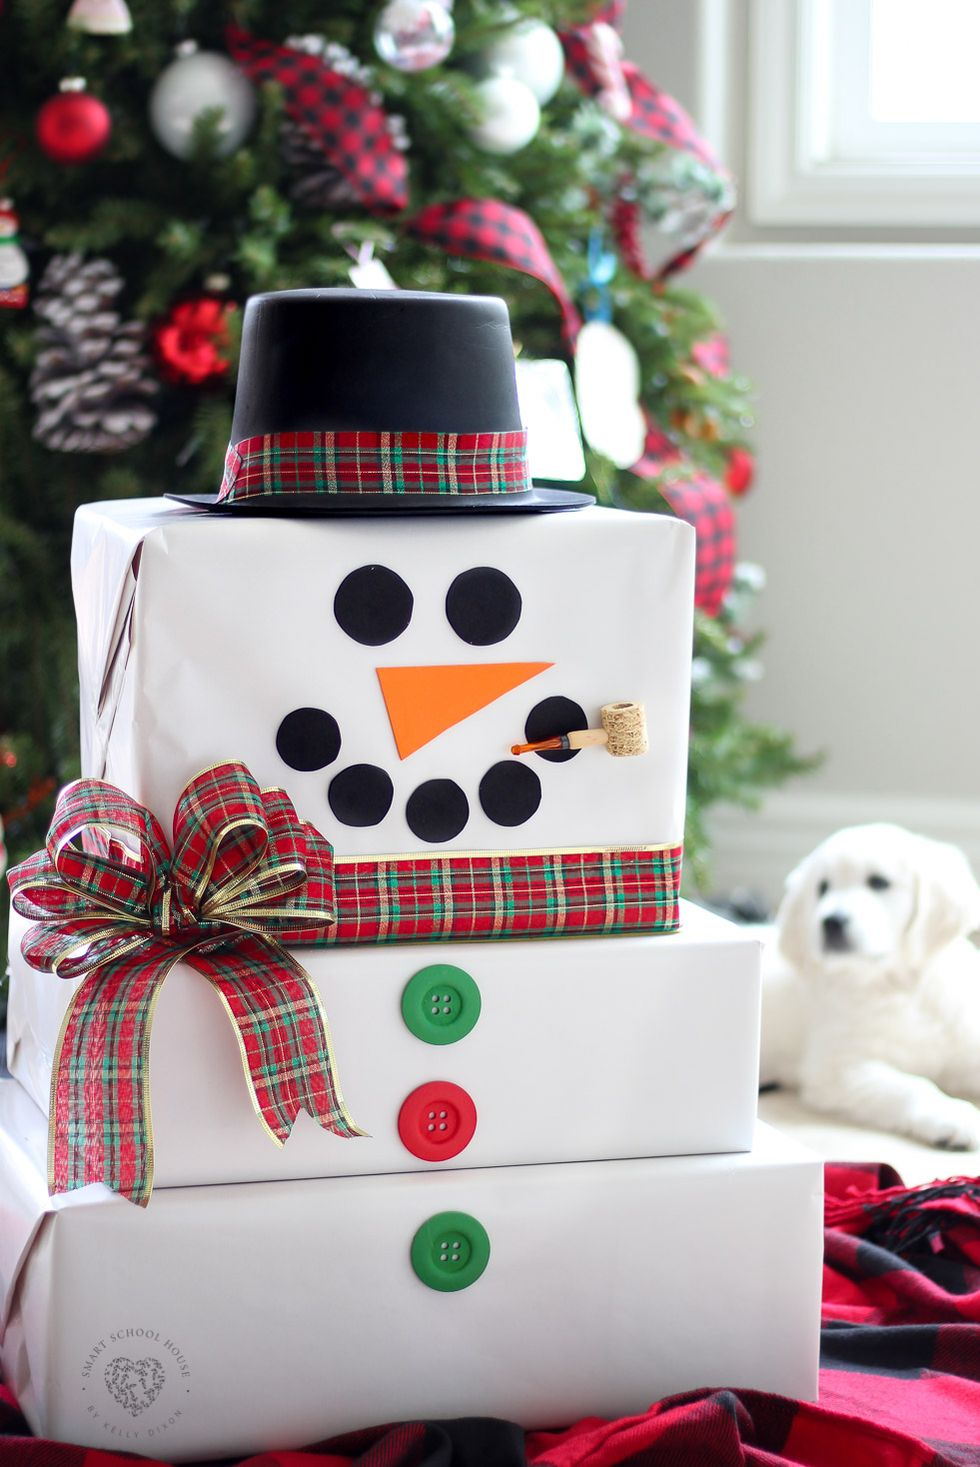 Creative Christmas wrapping ideas: snowman wrapping